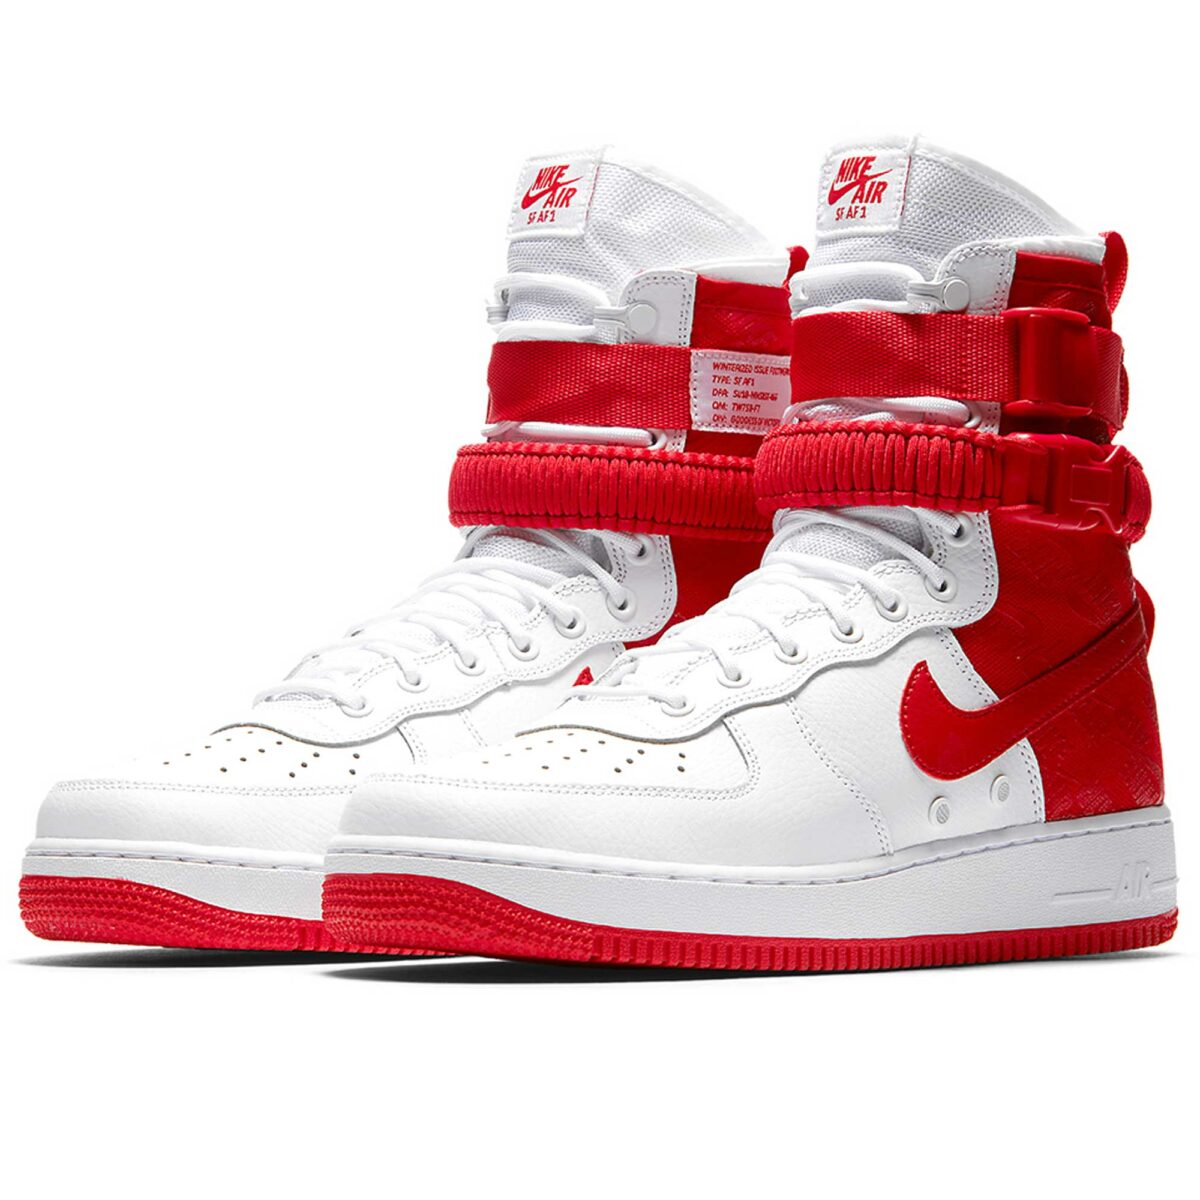 nike sf air force 1 white red ar1955_100 купить